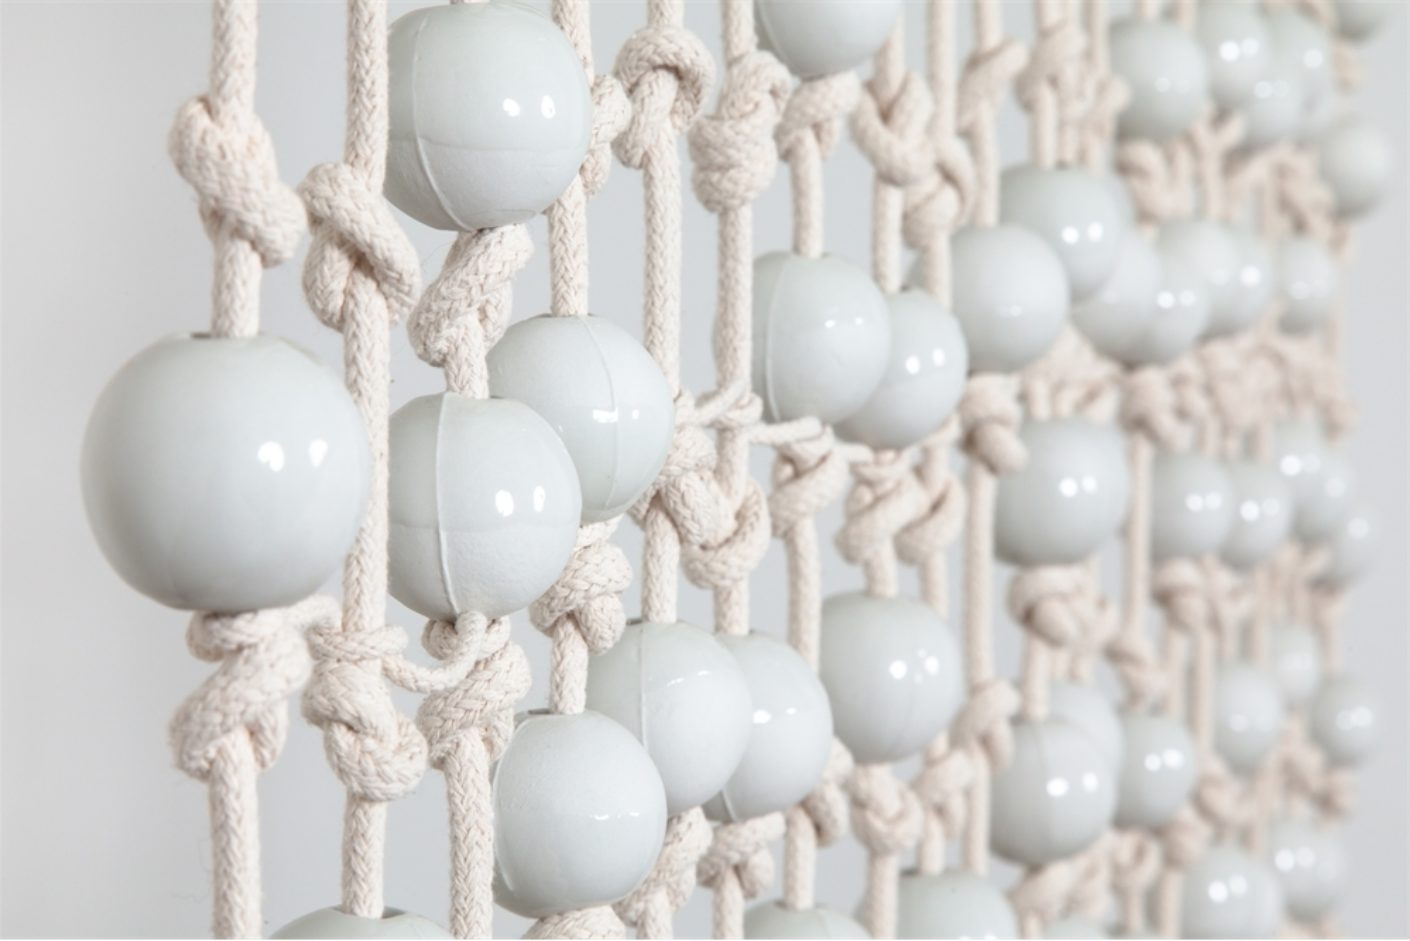 Knots And Beads Curtain, Hella Jongerius Courtesy Galerie Kreo